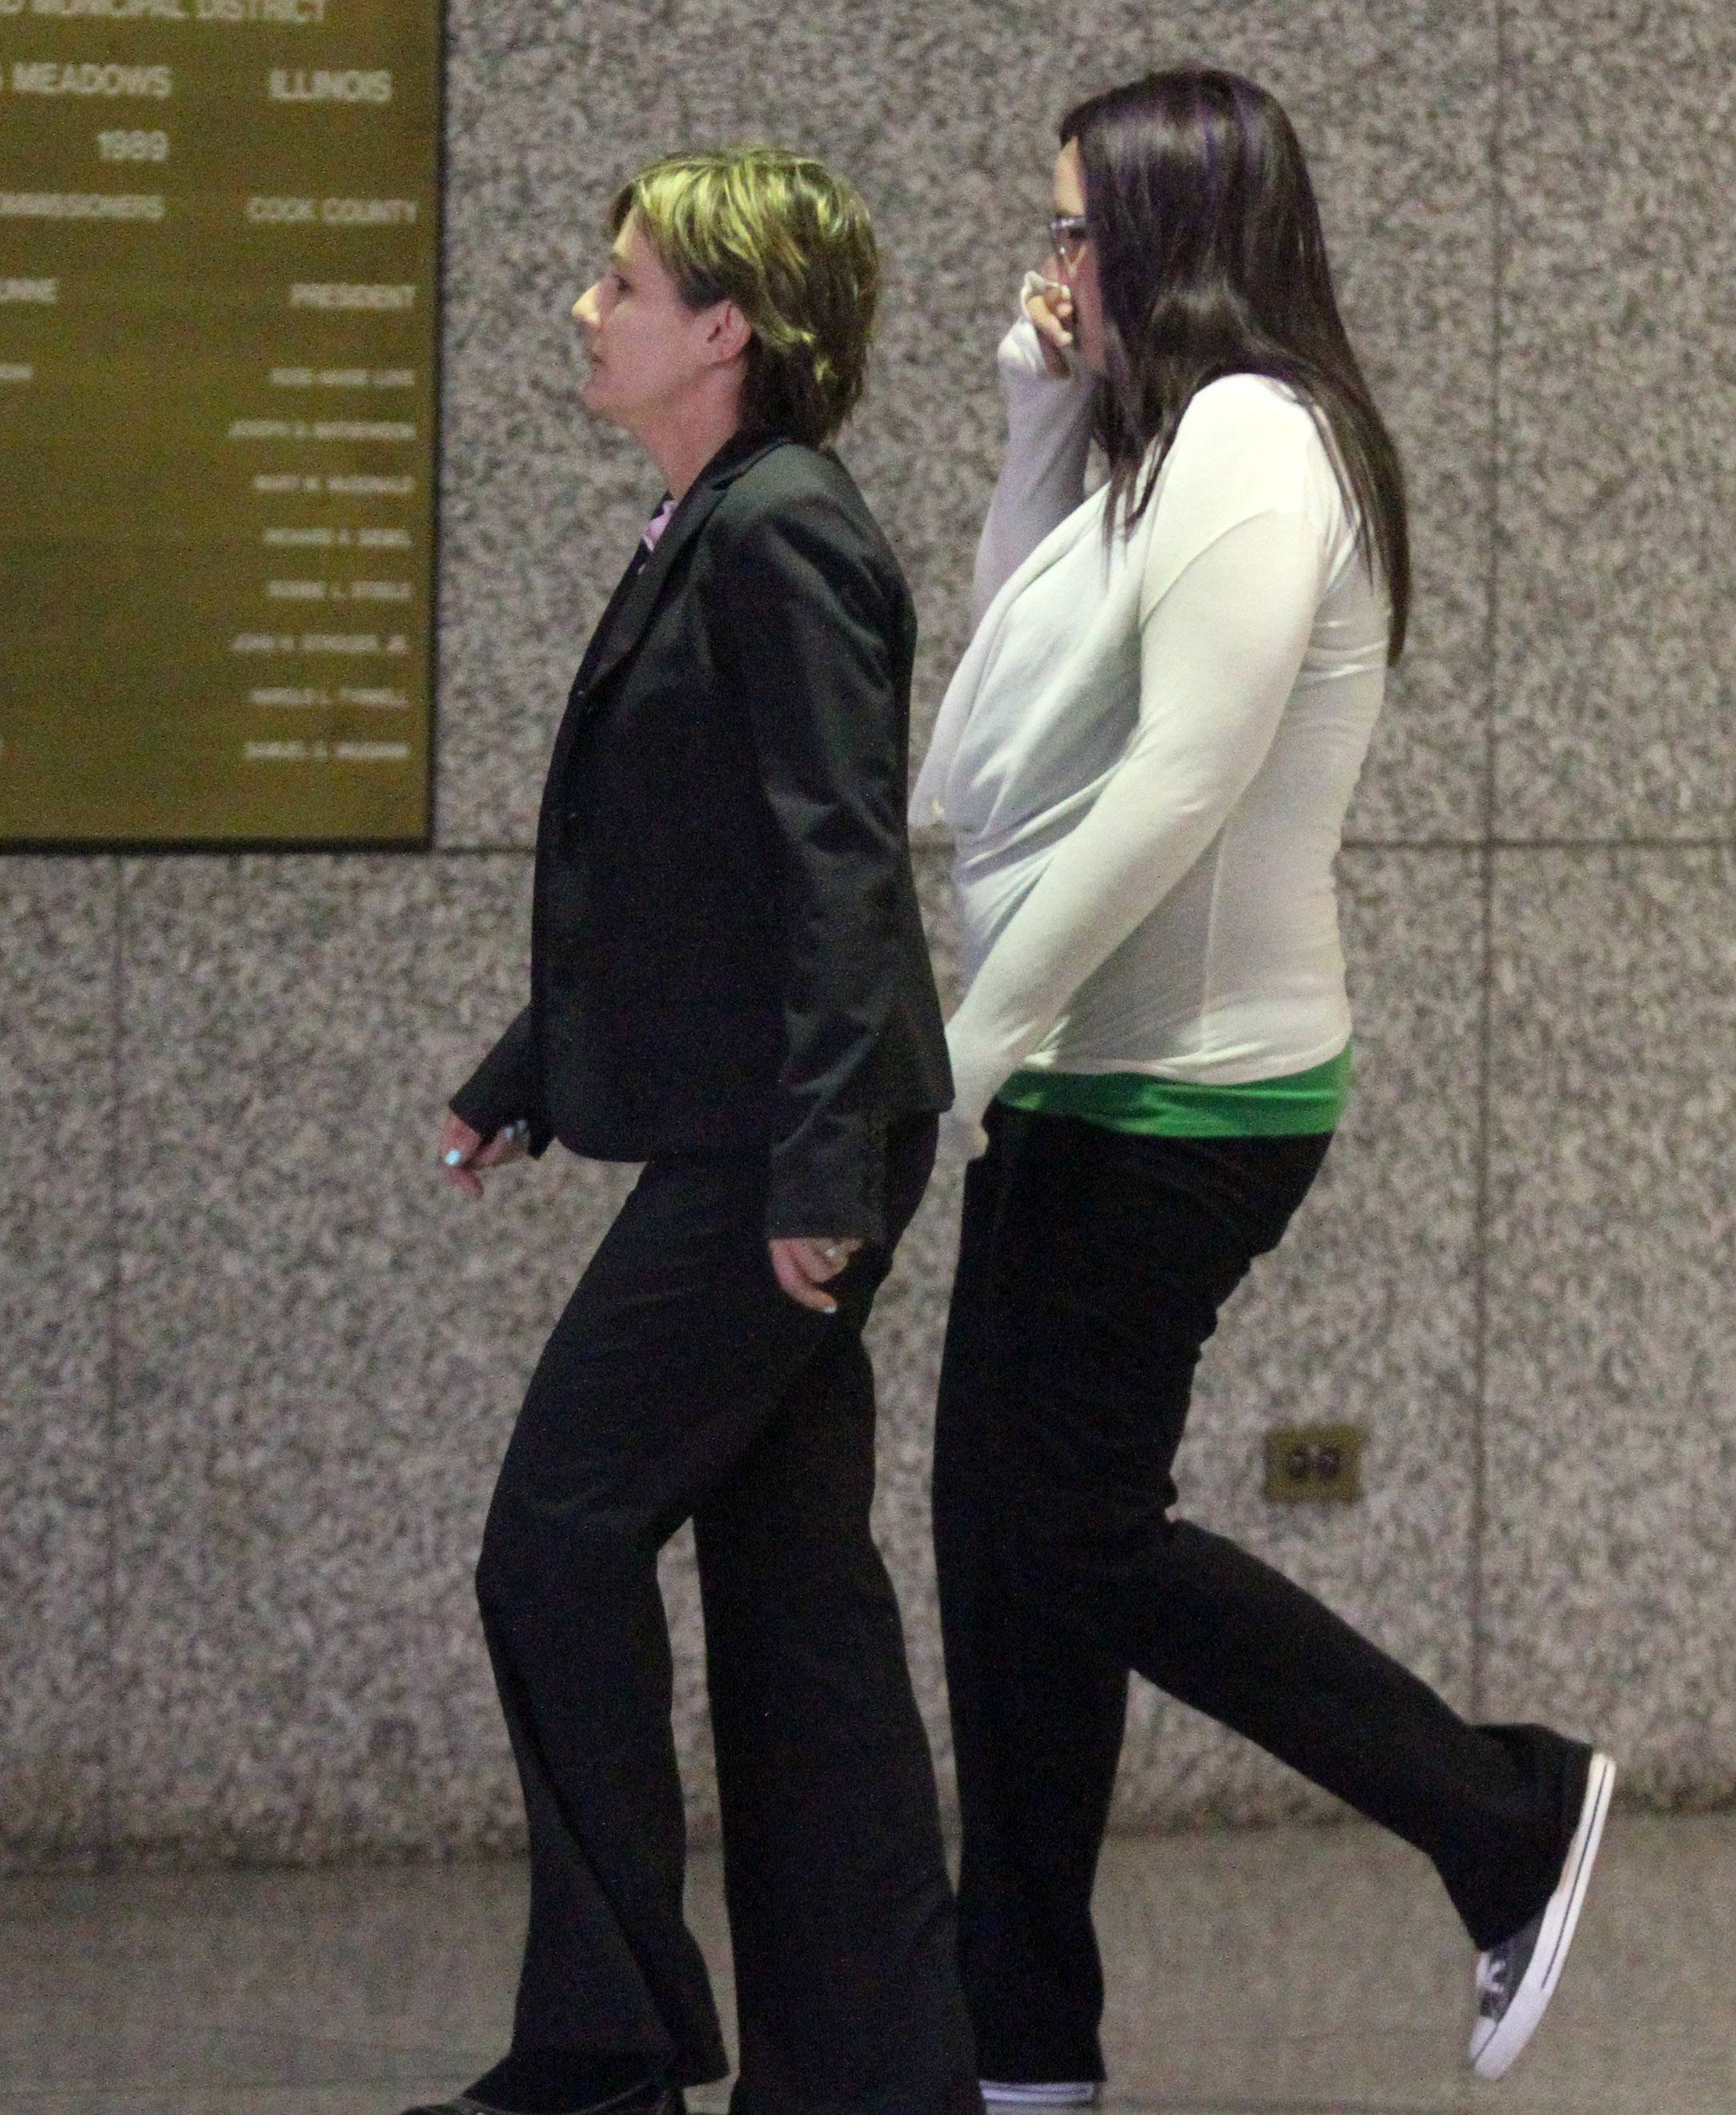 Amanda Engelhardt, Right, Arrives Wednesday At The Cook County Courthouse  In Rolling Meadow As